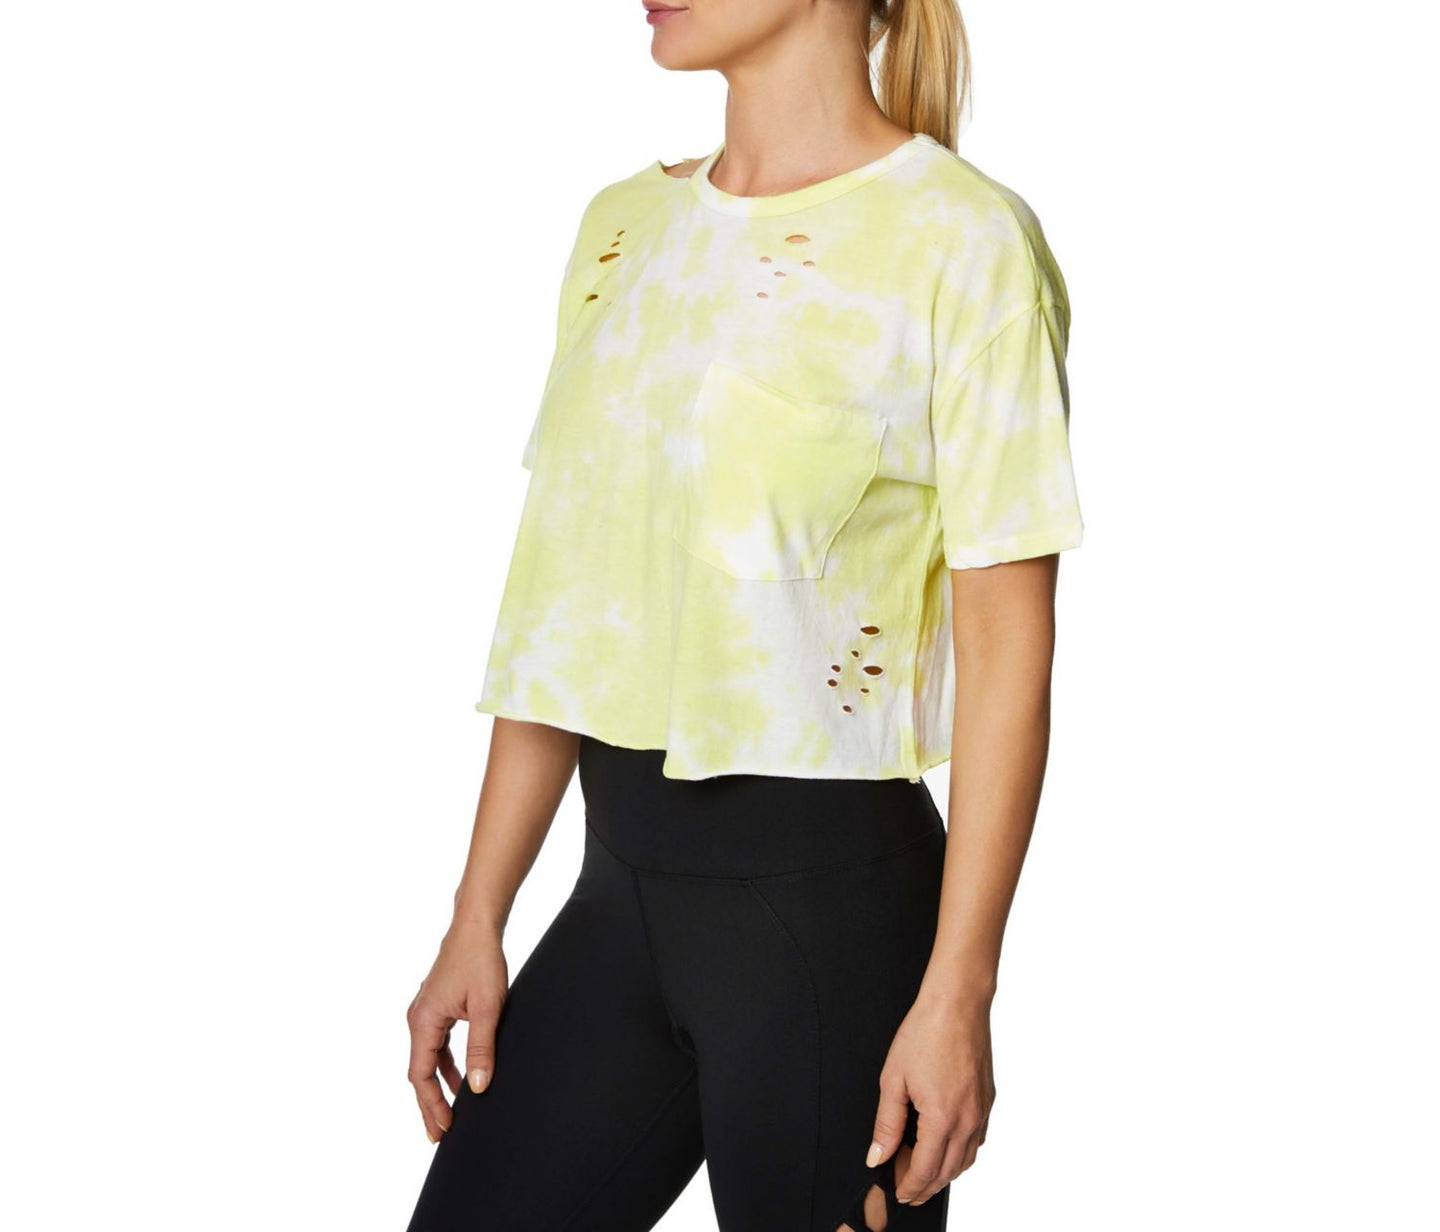 OVERSIZED DISTRESSED CROP TEE WHITE-YELLOW - APPAREL - Betsey Johnson